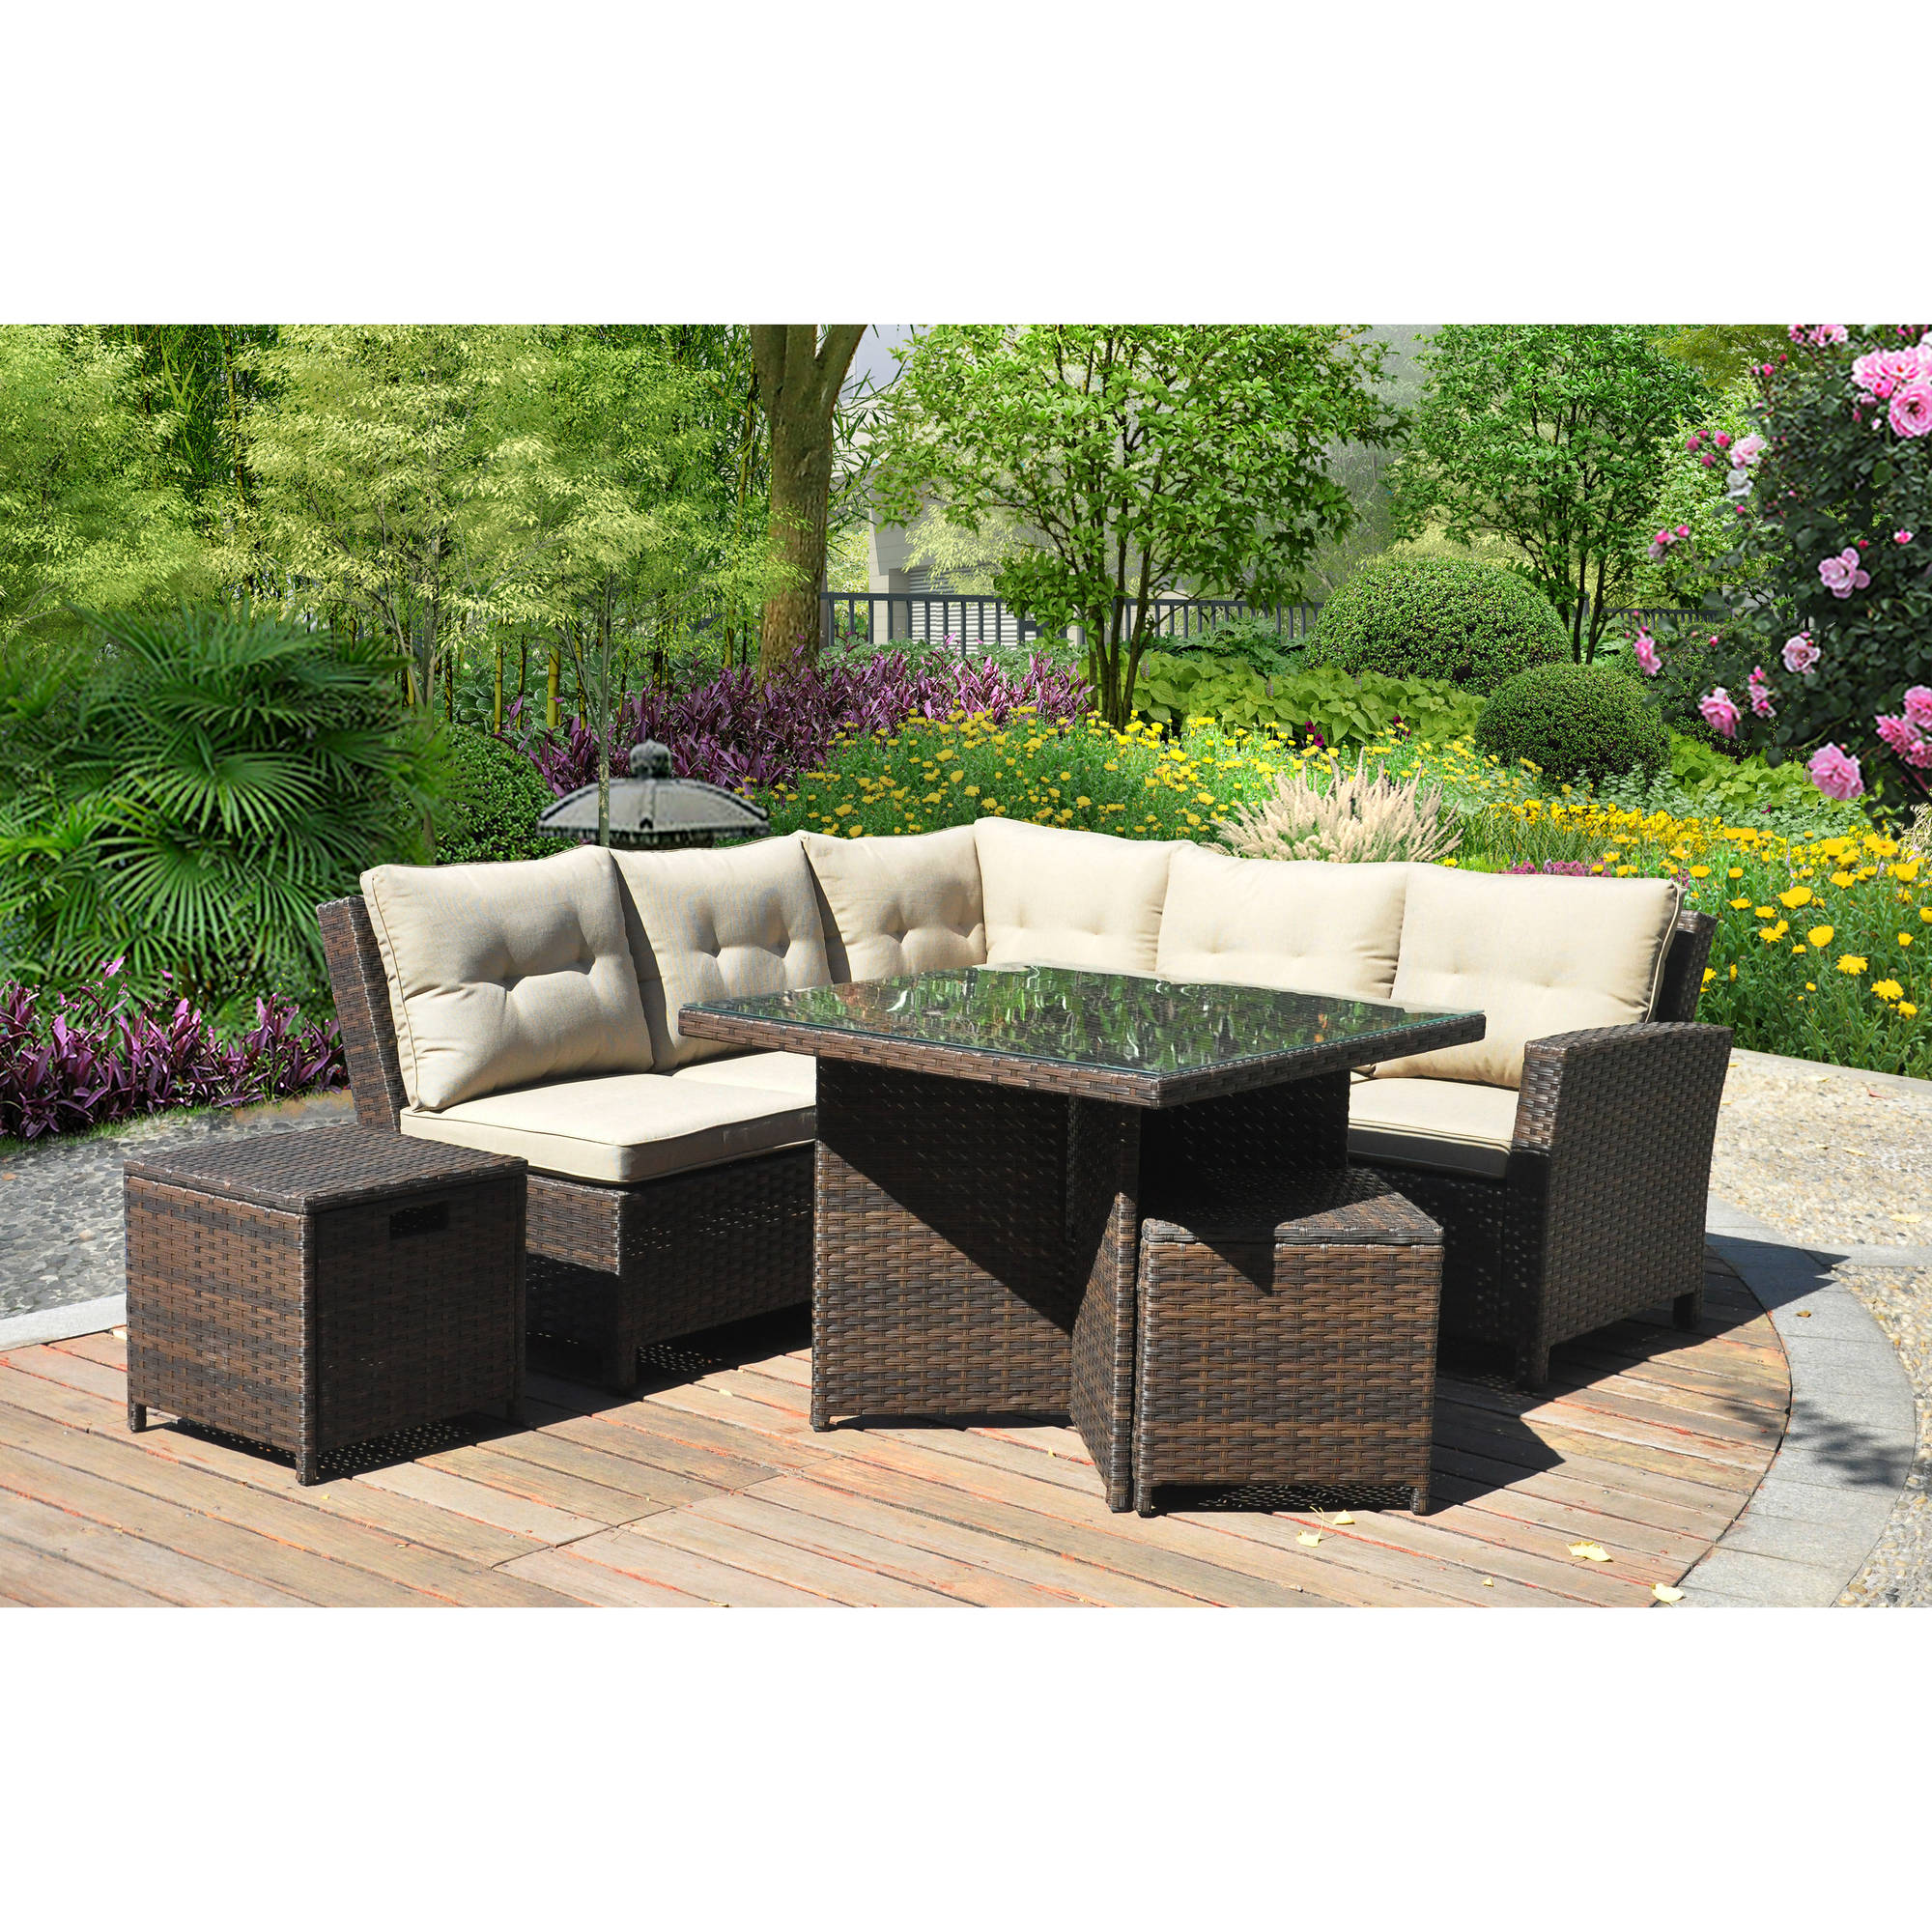 Better Homes and Gardens Baytown 5-Piece Woven Sectional Sofa Set, Seats 5 by